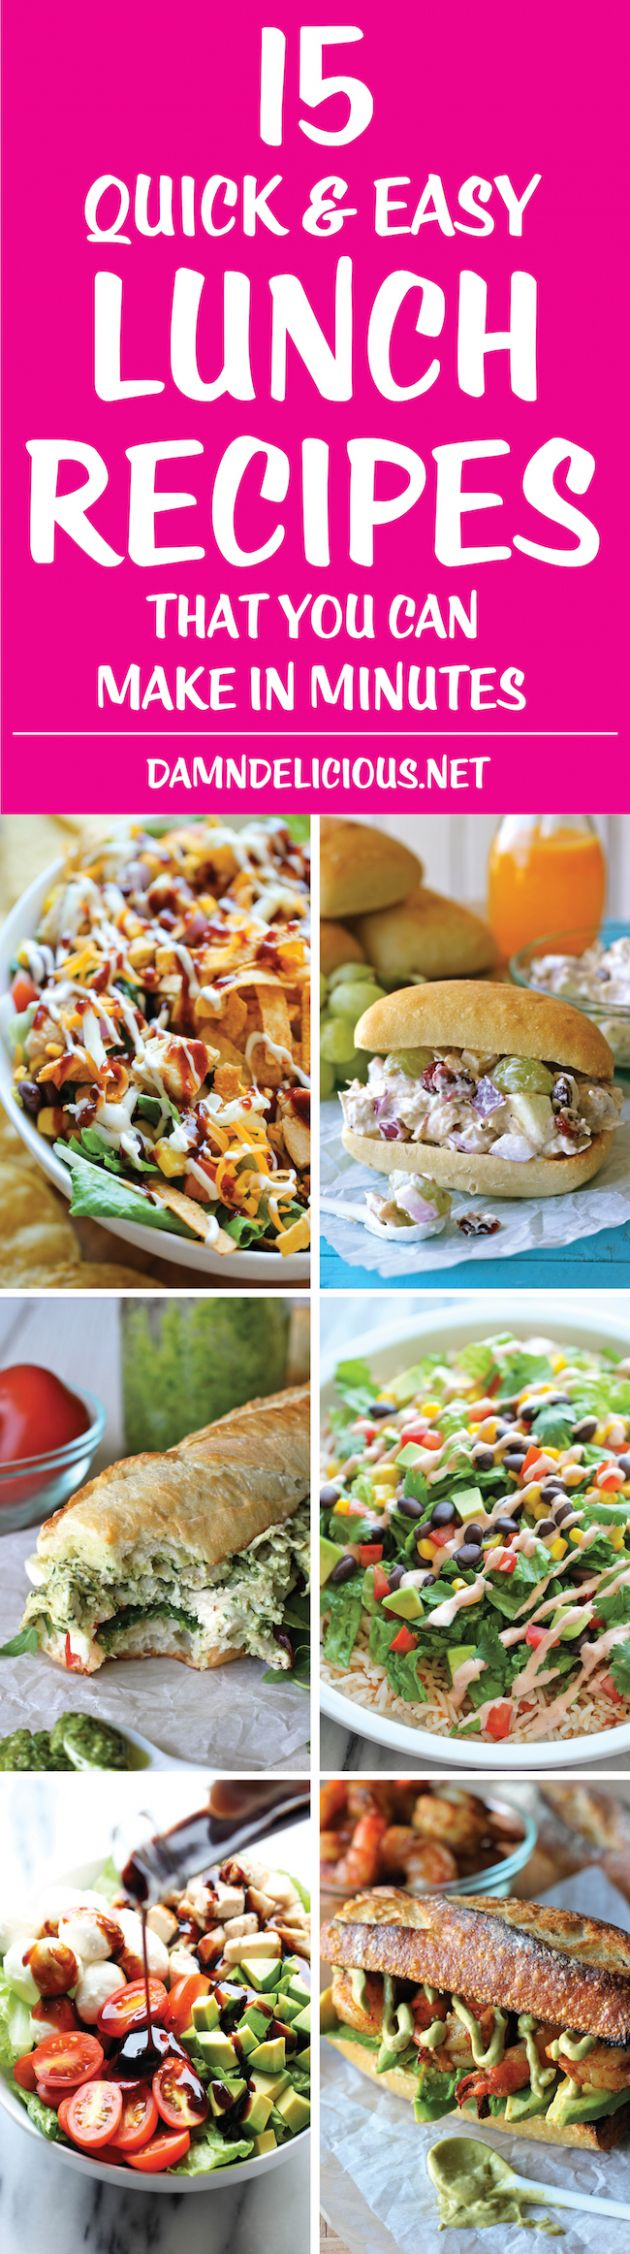 9 Quick and Easy Lunch Recipes - Damn Delicious - Simple Recipes For Lunch